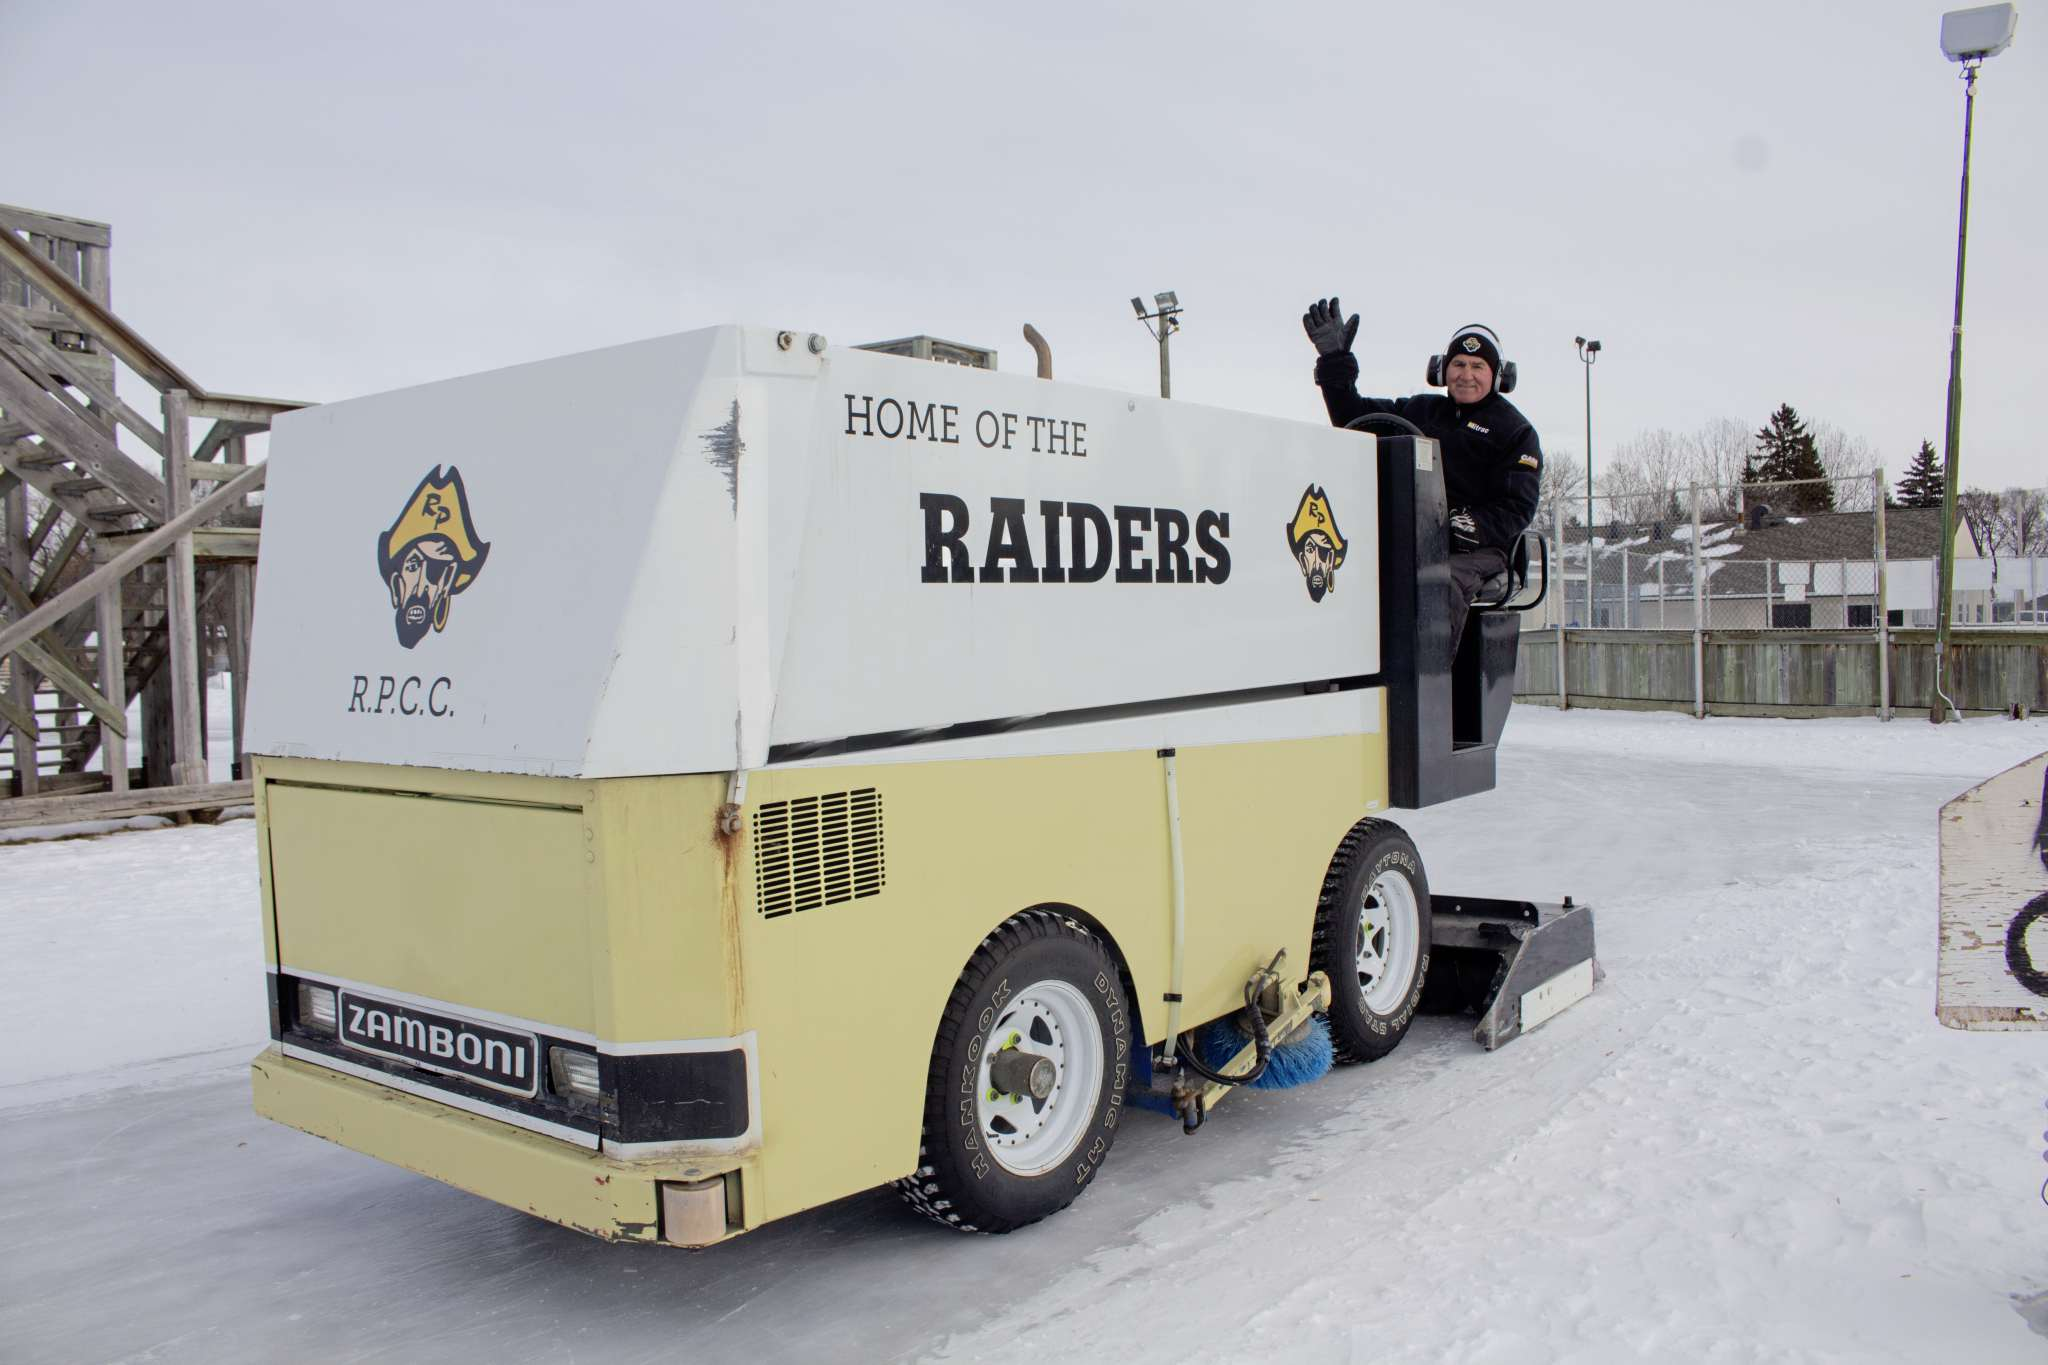 Jan. 8, 2020 - Marcy Beaucage, driving around a zamboni at the Roblin Park Community Centre. Beaucage has been working for the community centre for over 30 years. (JUSTIN LUSCHINSKI/CANSTAR COMMUNITY NEWS/METRO)